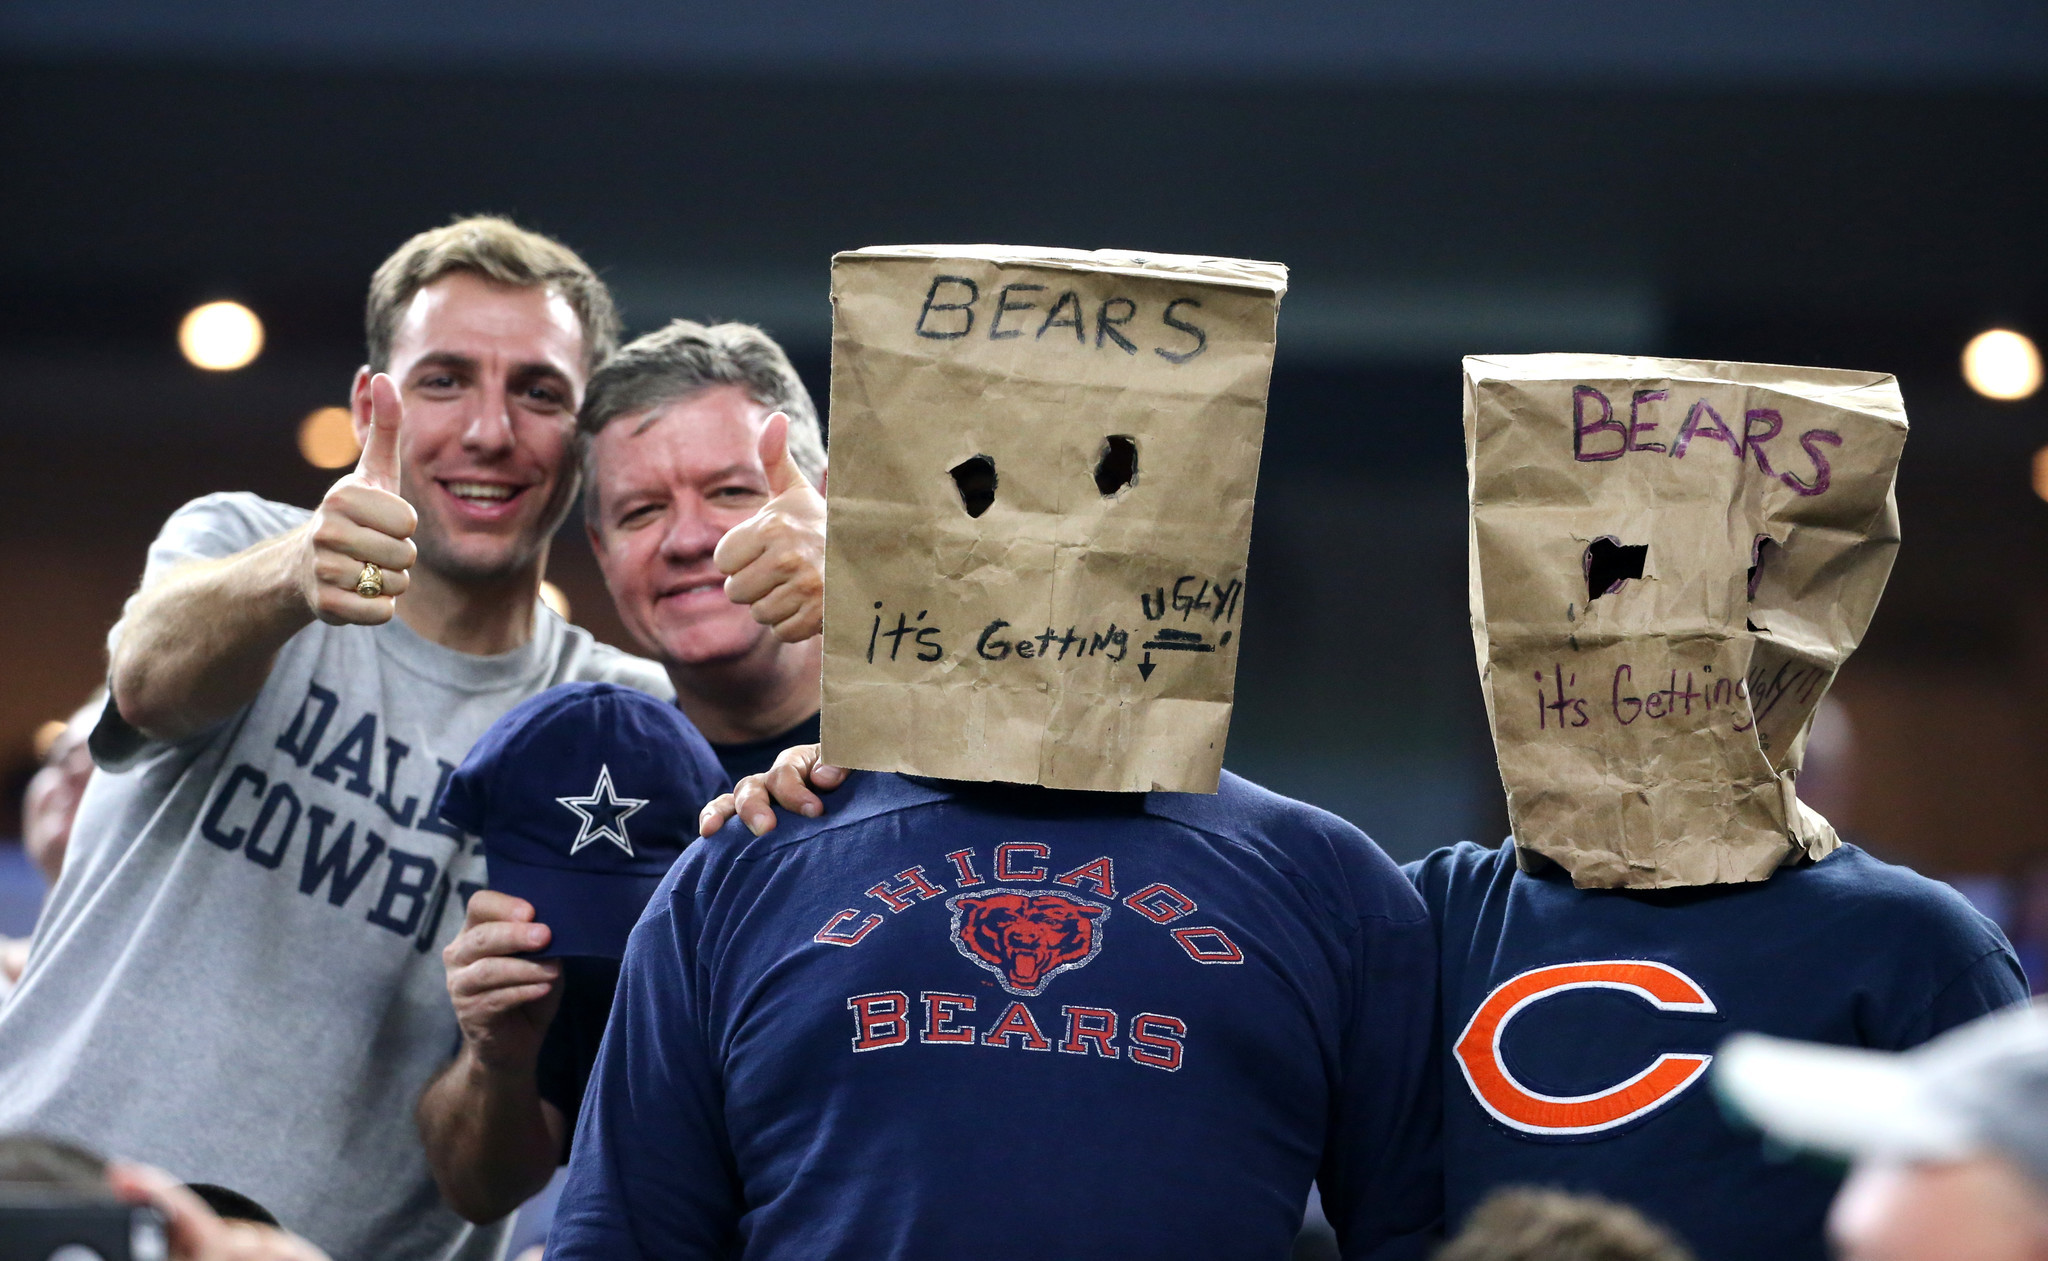 Ct-10-thoughts-bears-cowboys-biggs-20160926